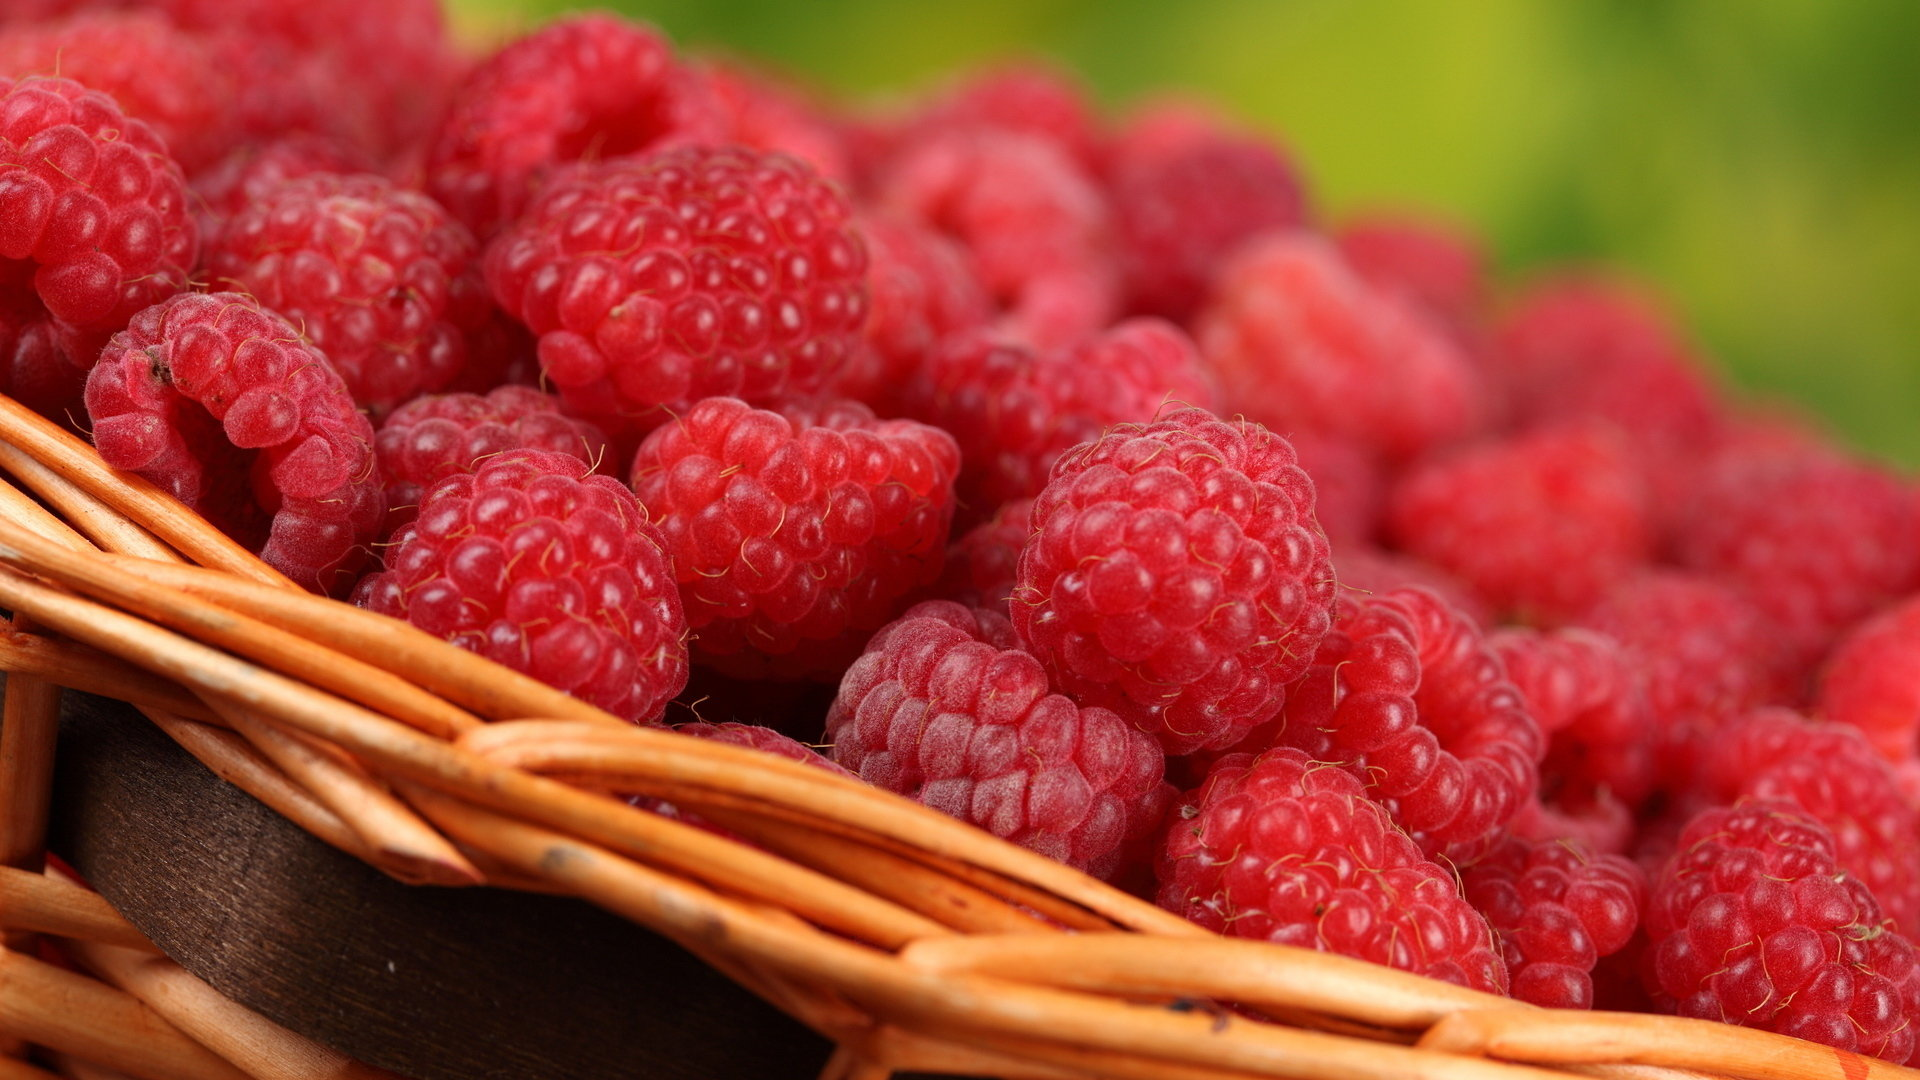 High resolution Raspberry full hd 1920x1080 background ID:50108 for desktop